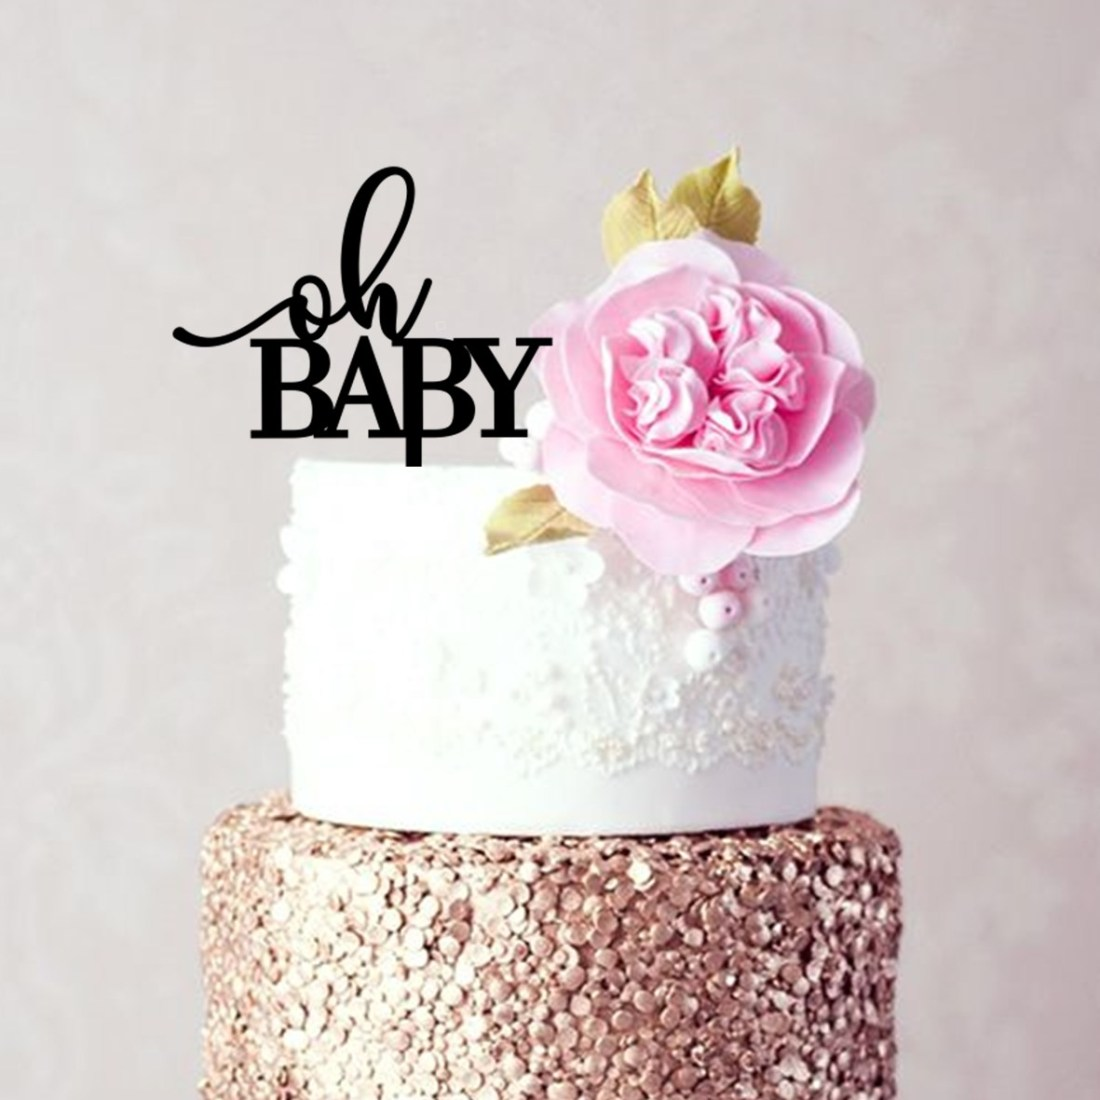 oh BABY CAPITALS Cake Topper